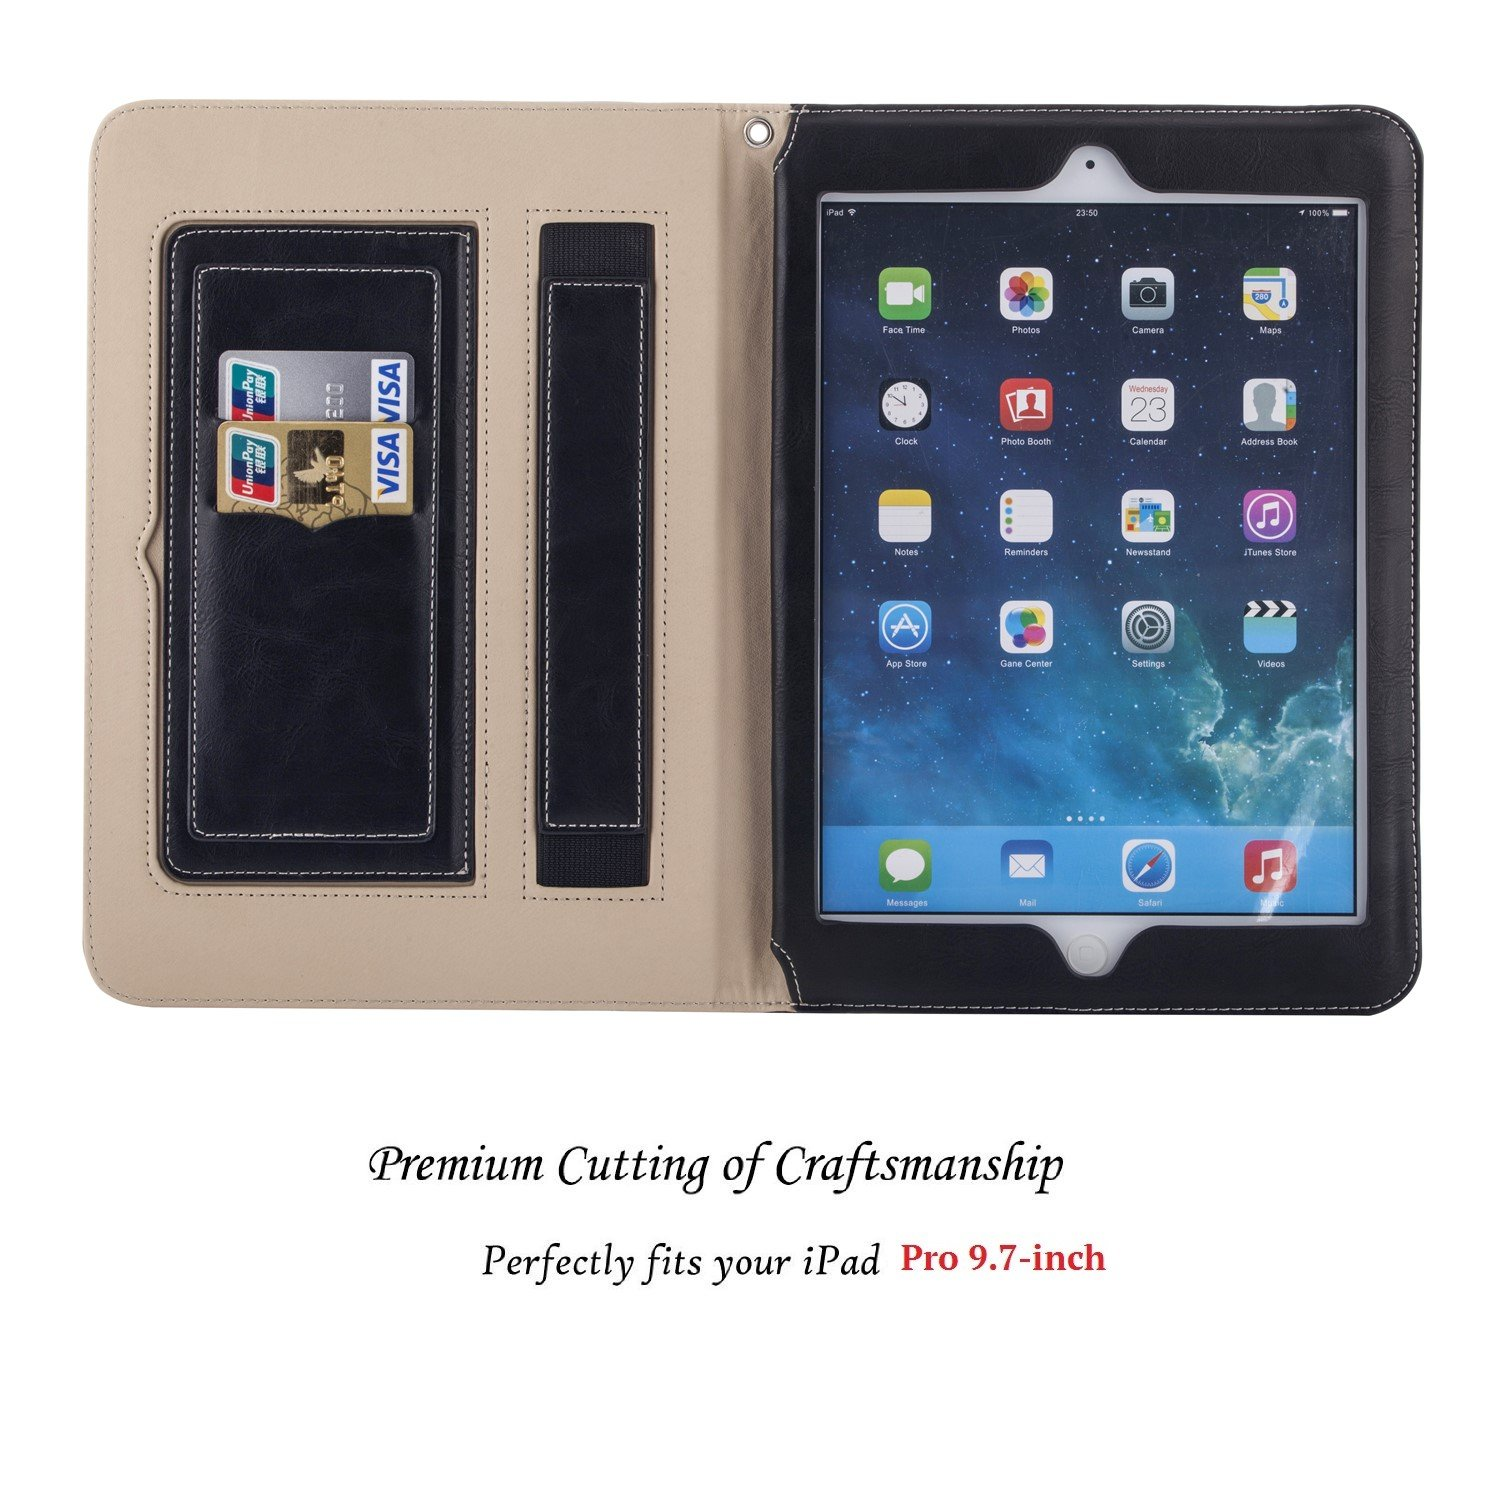 MIDNIGHT BLACK LEATHER New Phone Case Holder Accessories For Apple ...